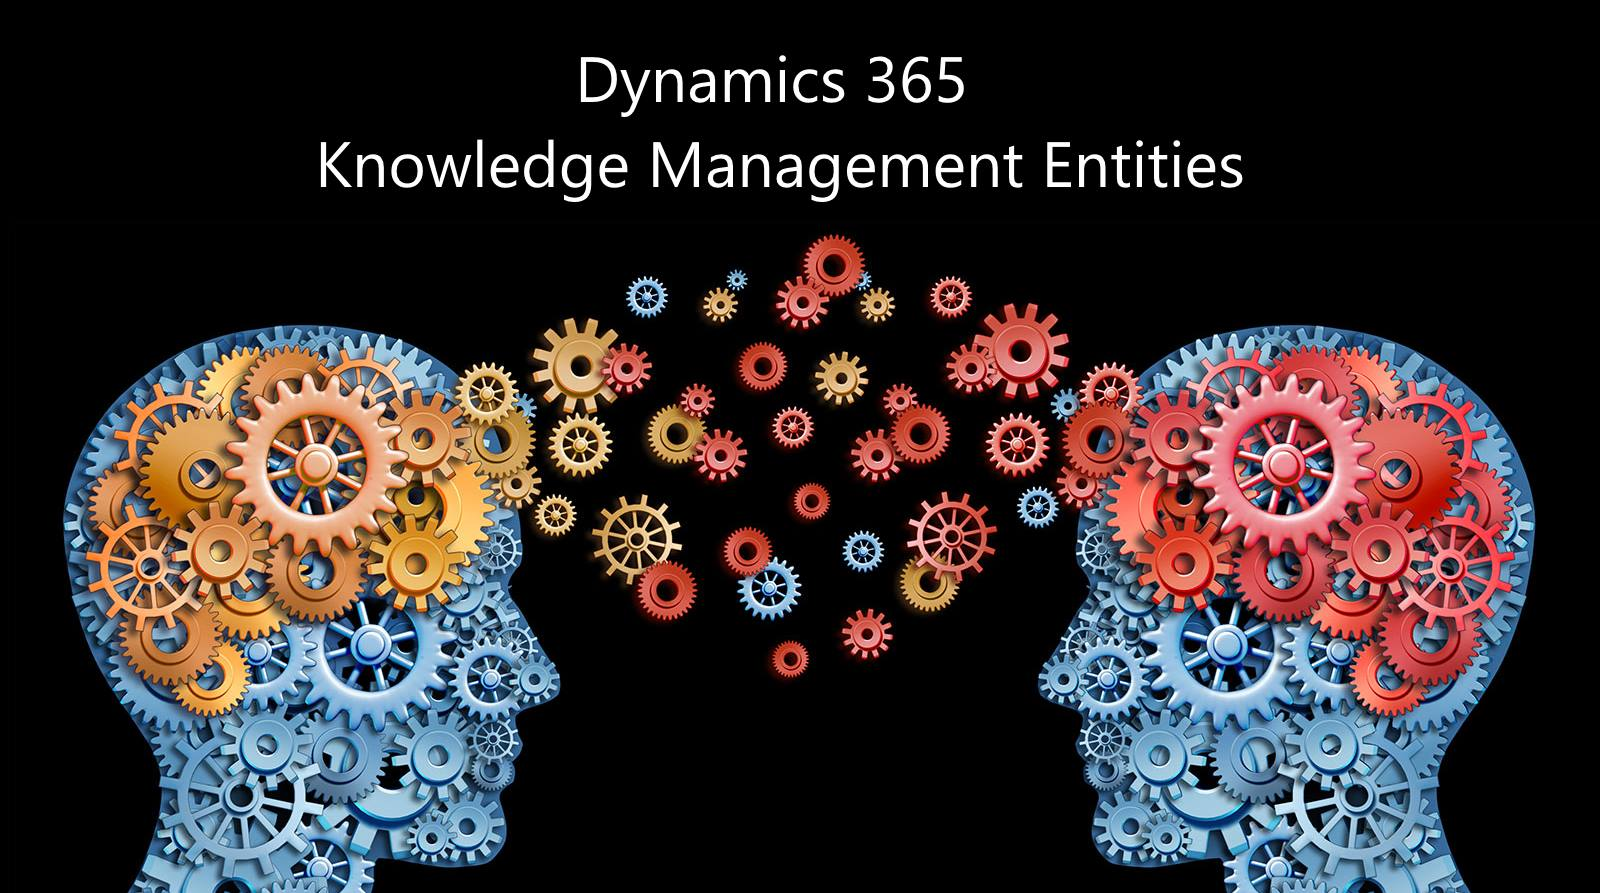 Knowledge Management Entities